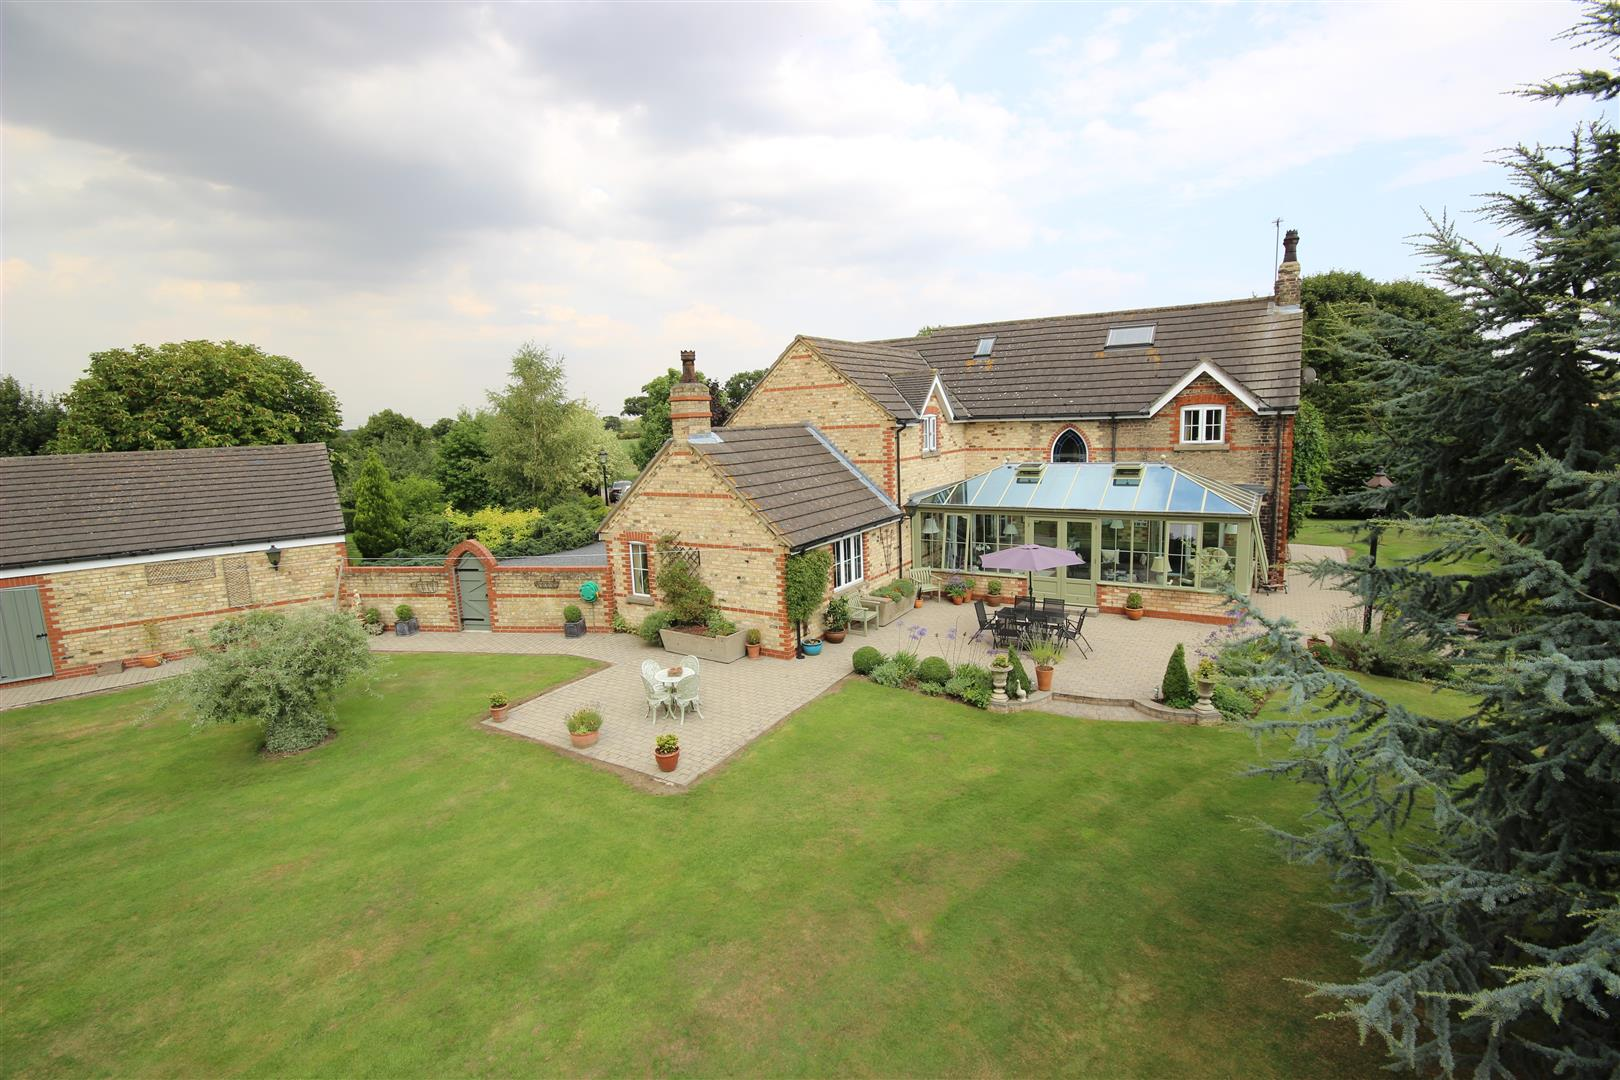 Manor Farm Green Oak Lane, Eastrington, Manor Farm, DN14 7XP